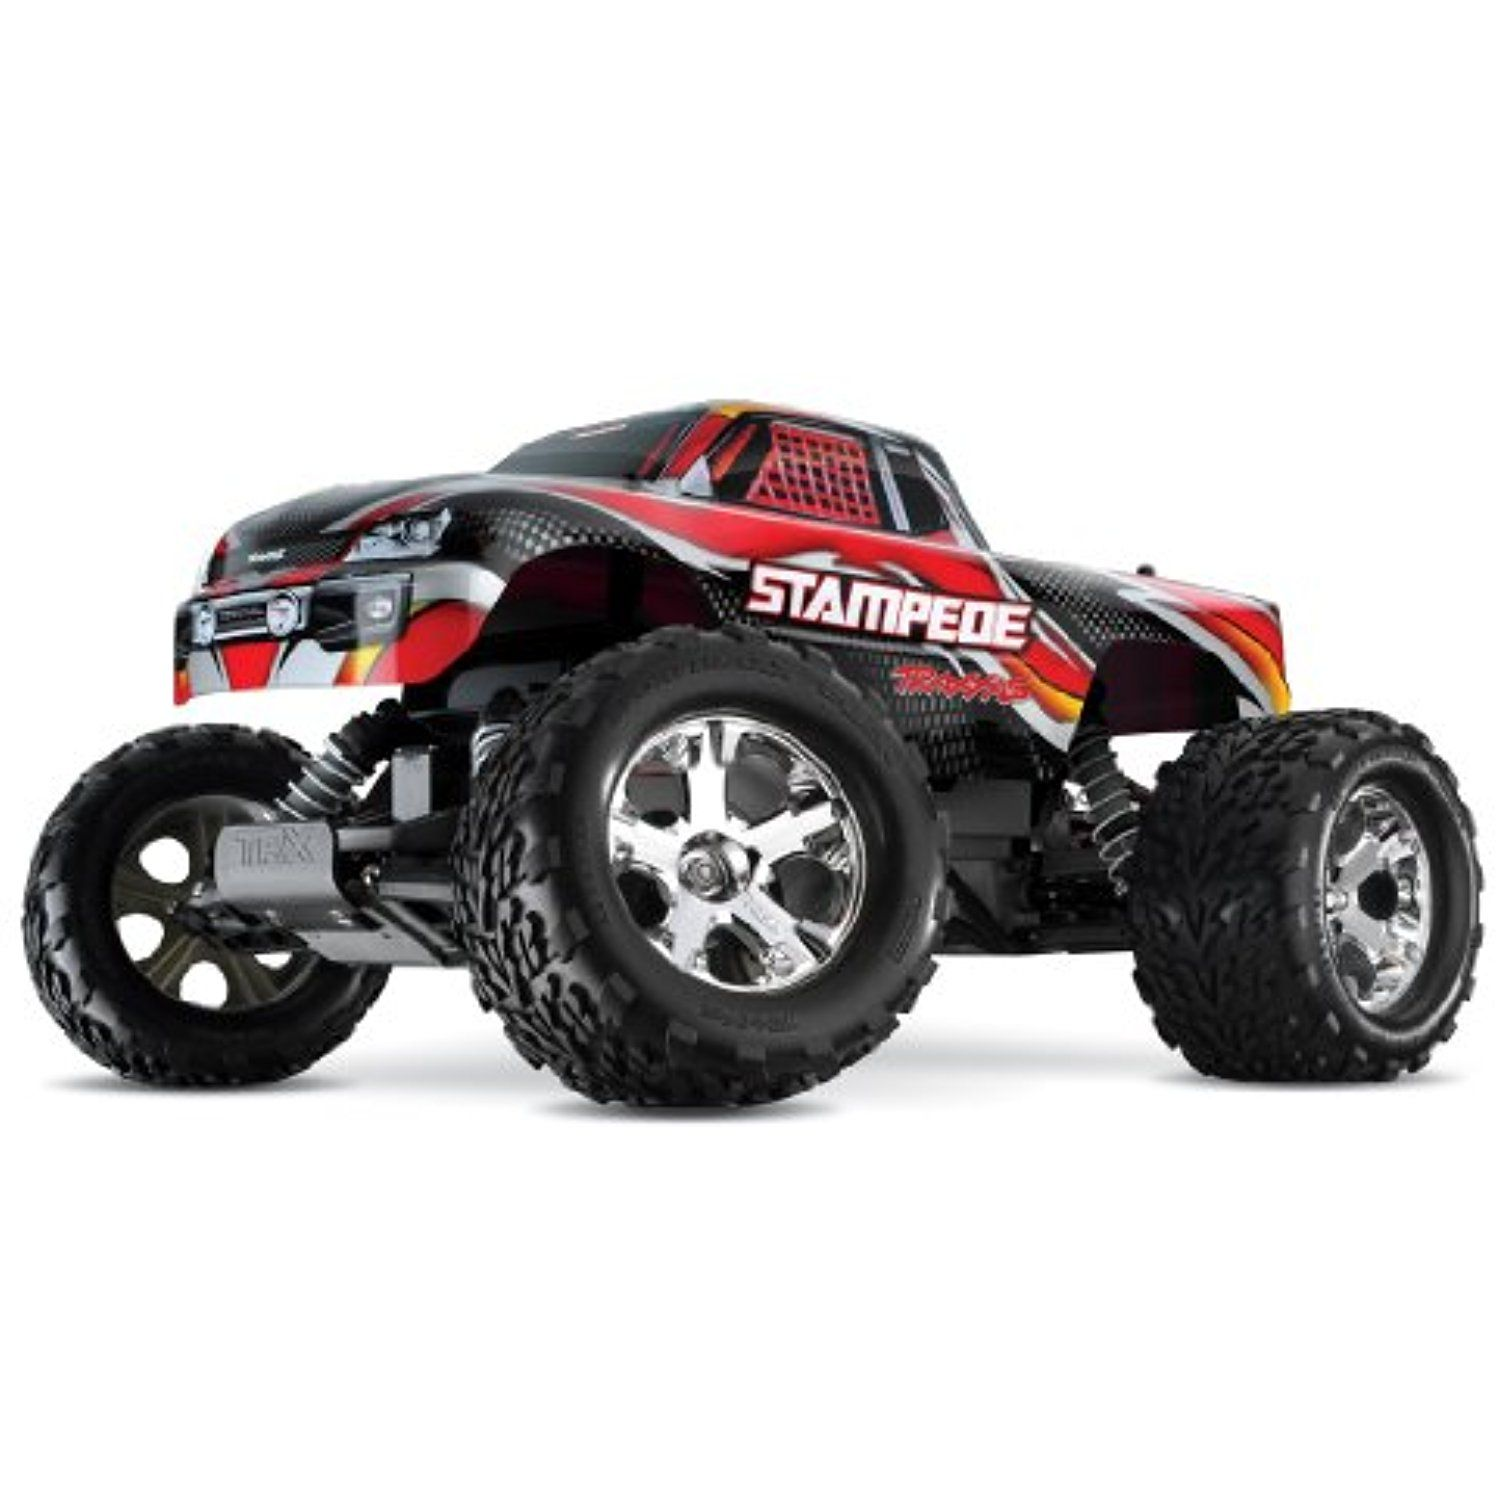 Traxxas The Stampede XL 5 Truck Be sure to check out this awesome